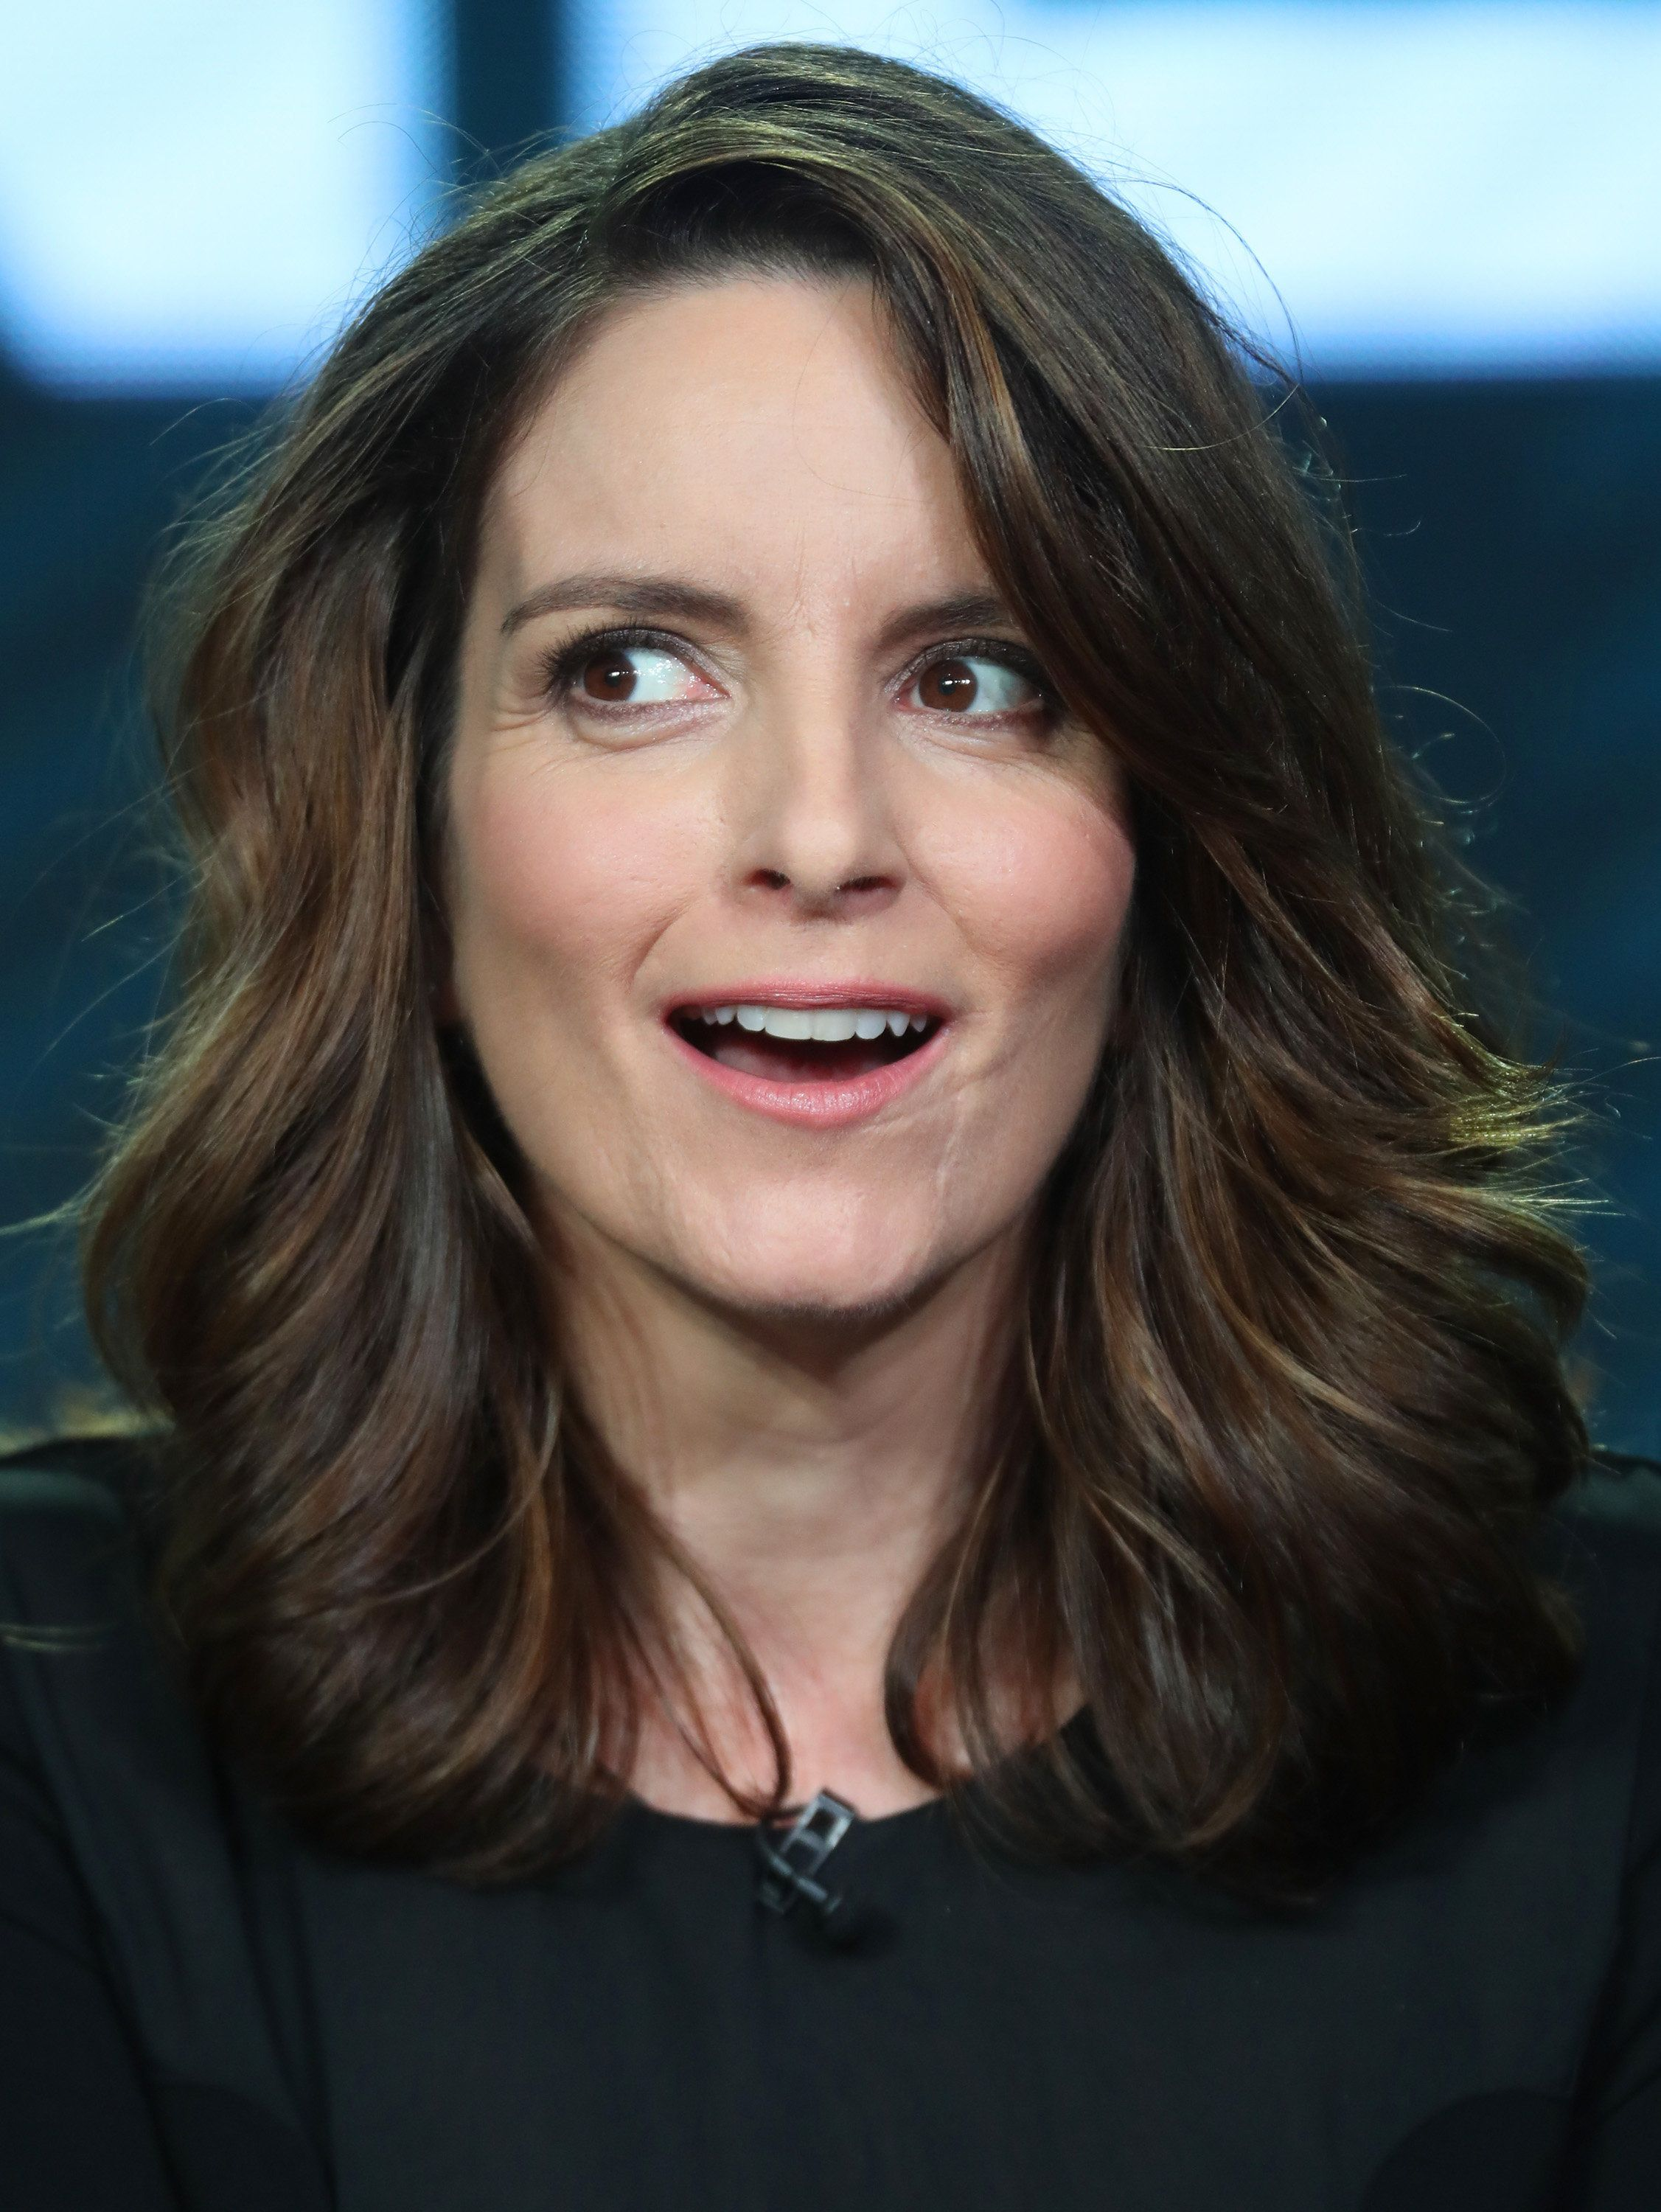 PASADENA, CA - JANUARY 18:  Executive producer Tina Fey of the television show 'Great News' speaks onstage during the NBCUniversal portion of the 2017 Winter Television Critics Association Press Tour at the Langham Hotel on January 18, 2017 in Pasadena, California.  (Photo by Frederick M. Brown/Getty Images)